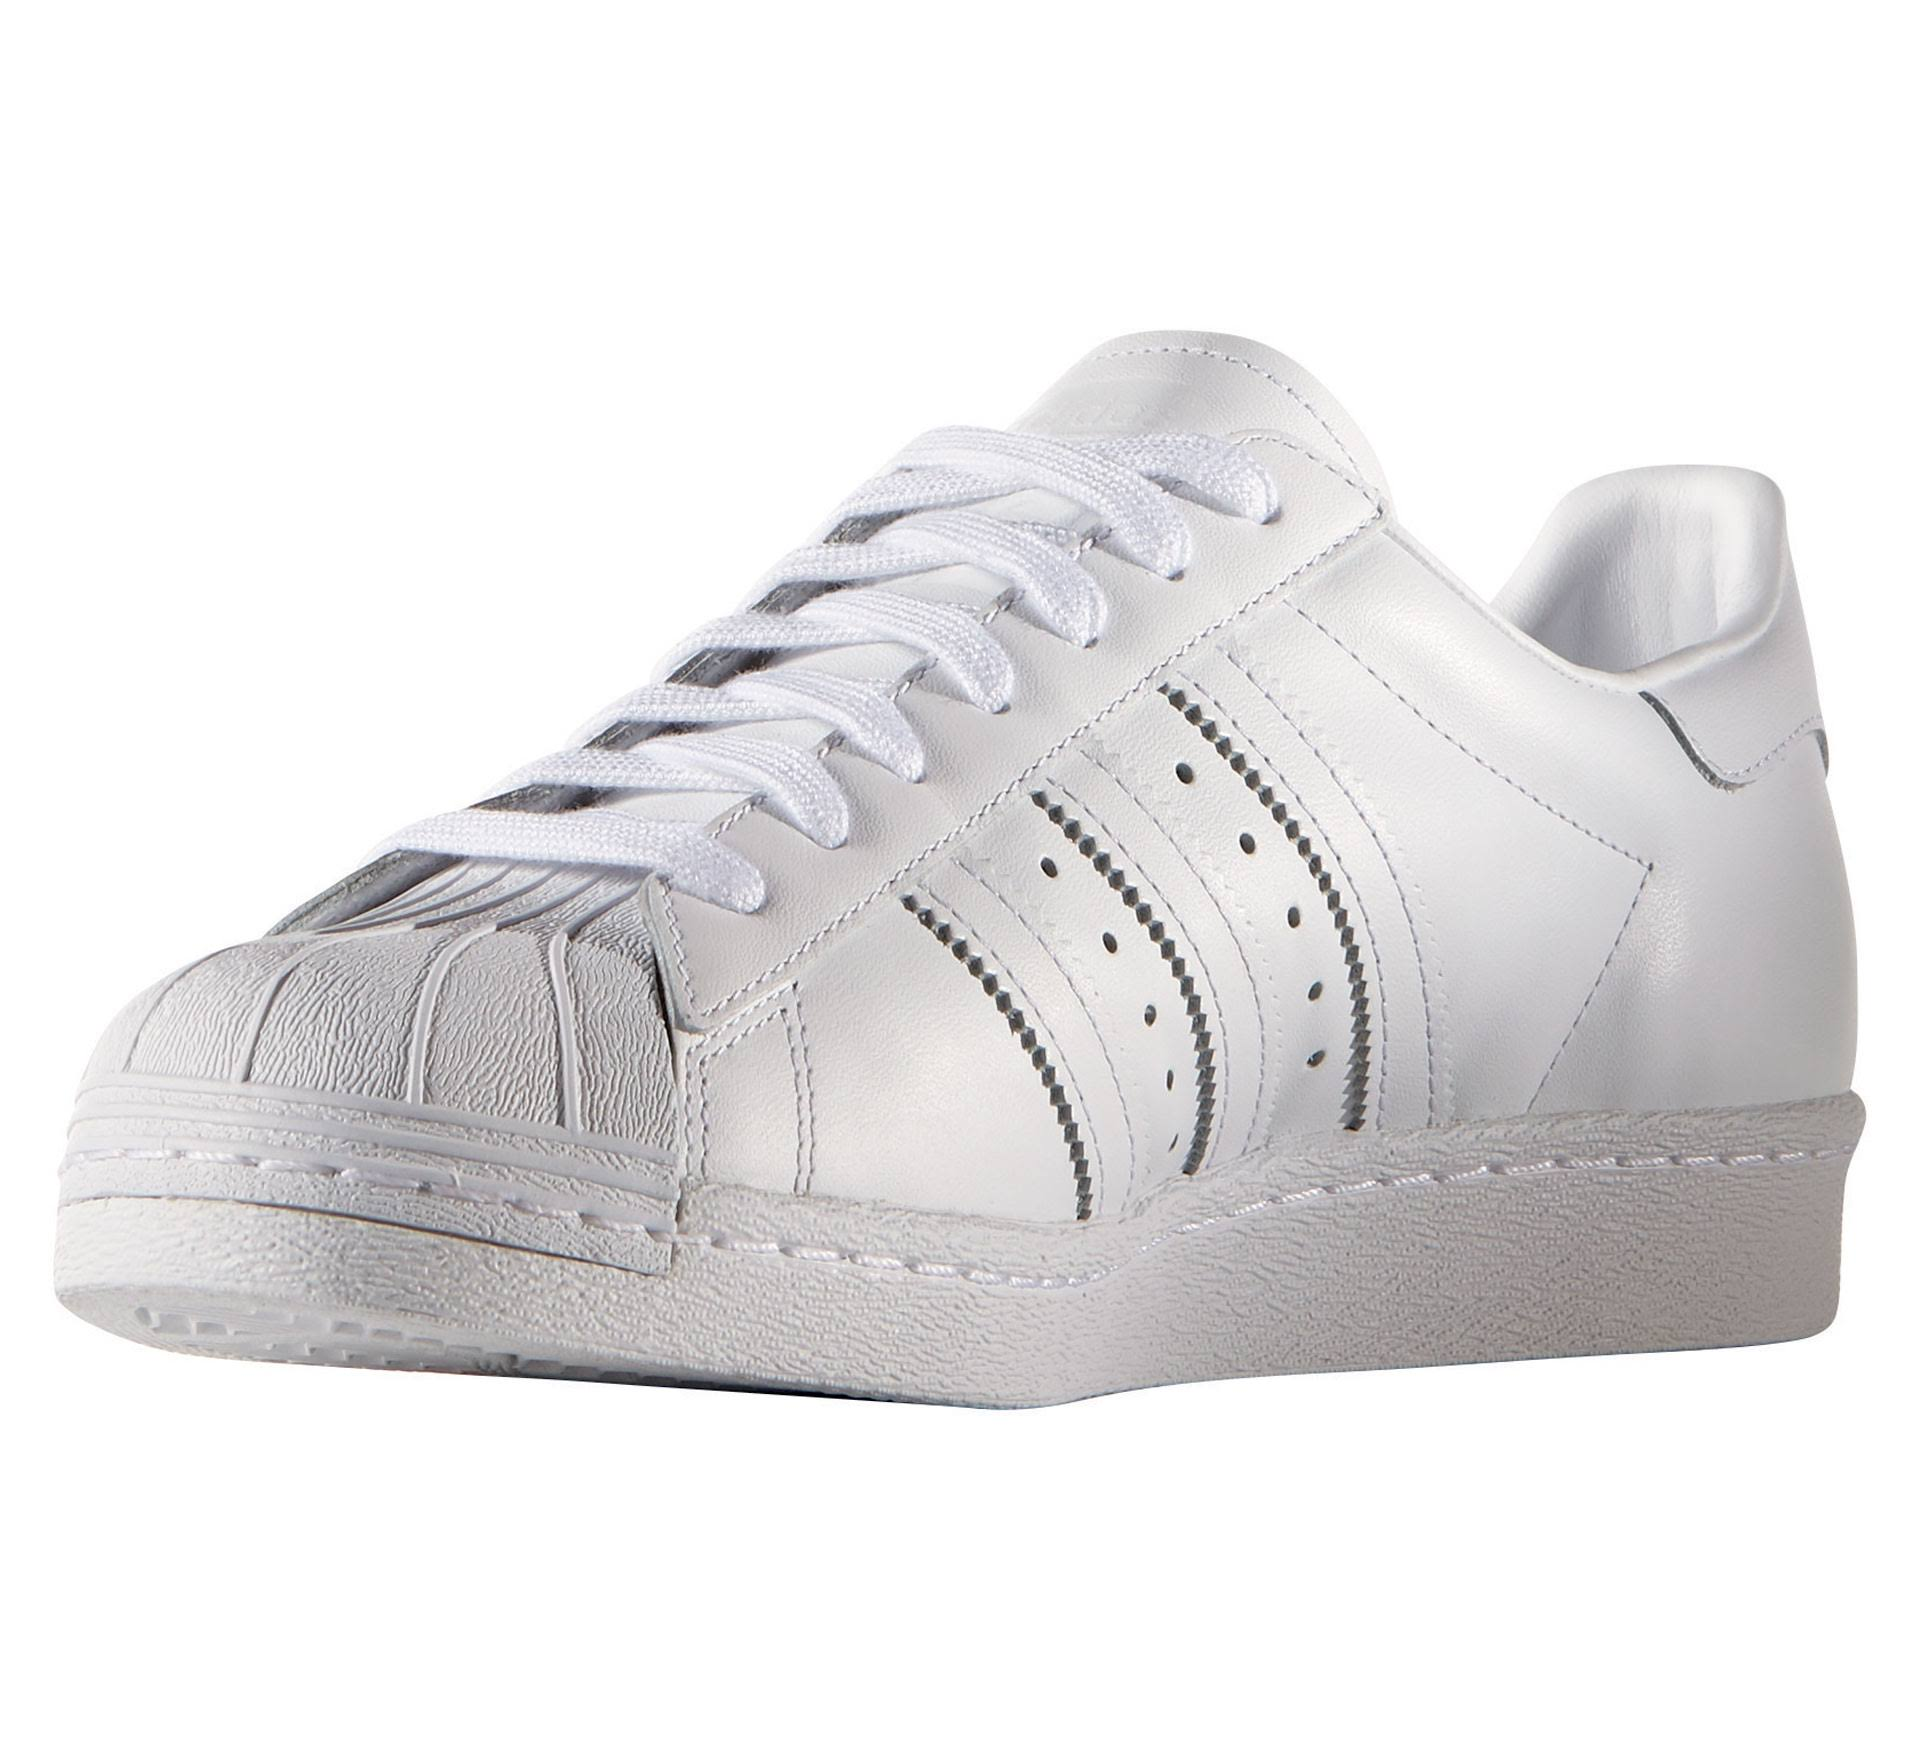 Black Schuh 36 Elfenbein core Adidas '80s footwear White Leder footwear White Superstar Black wHpqO